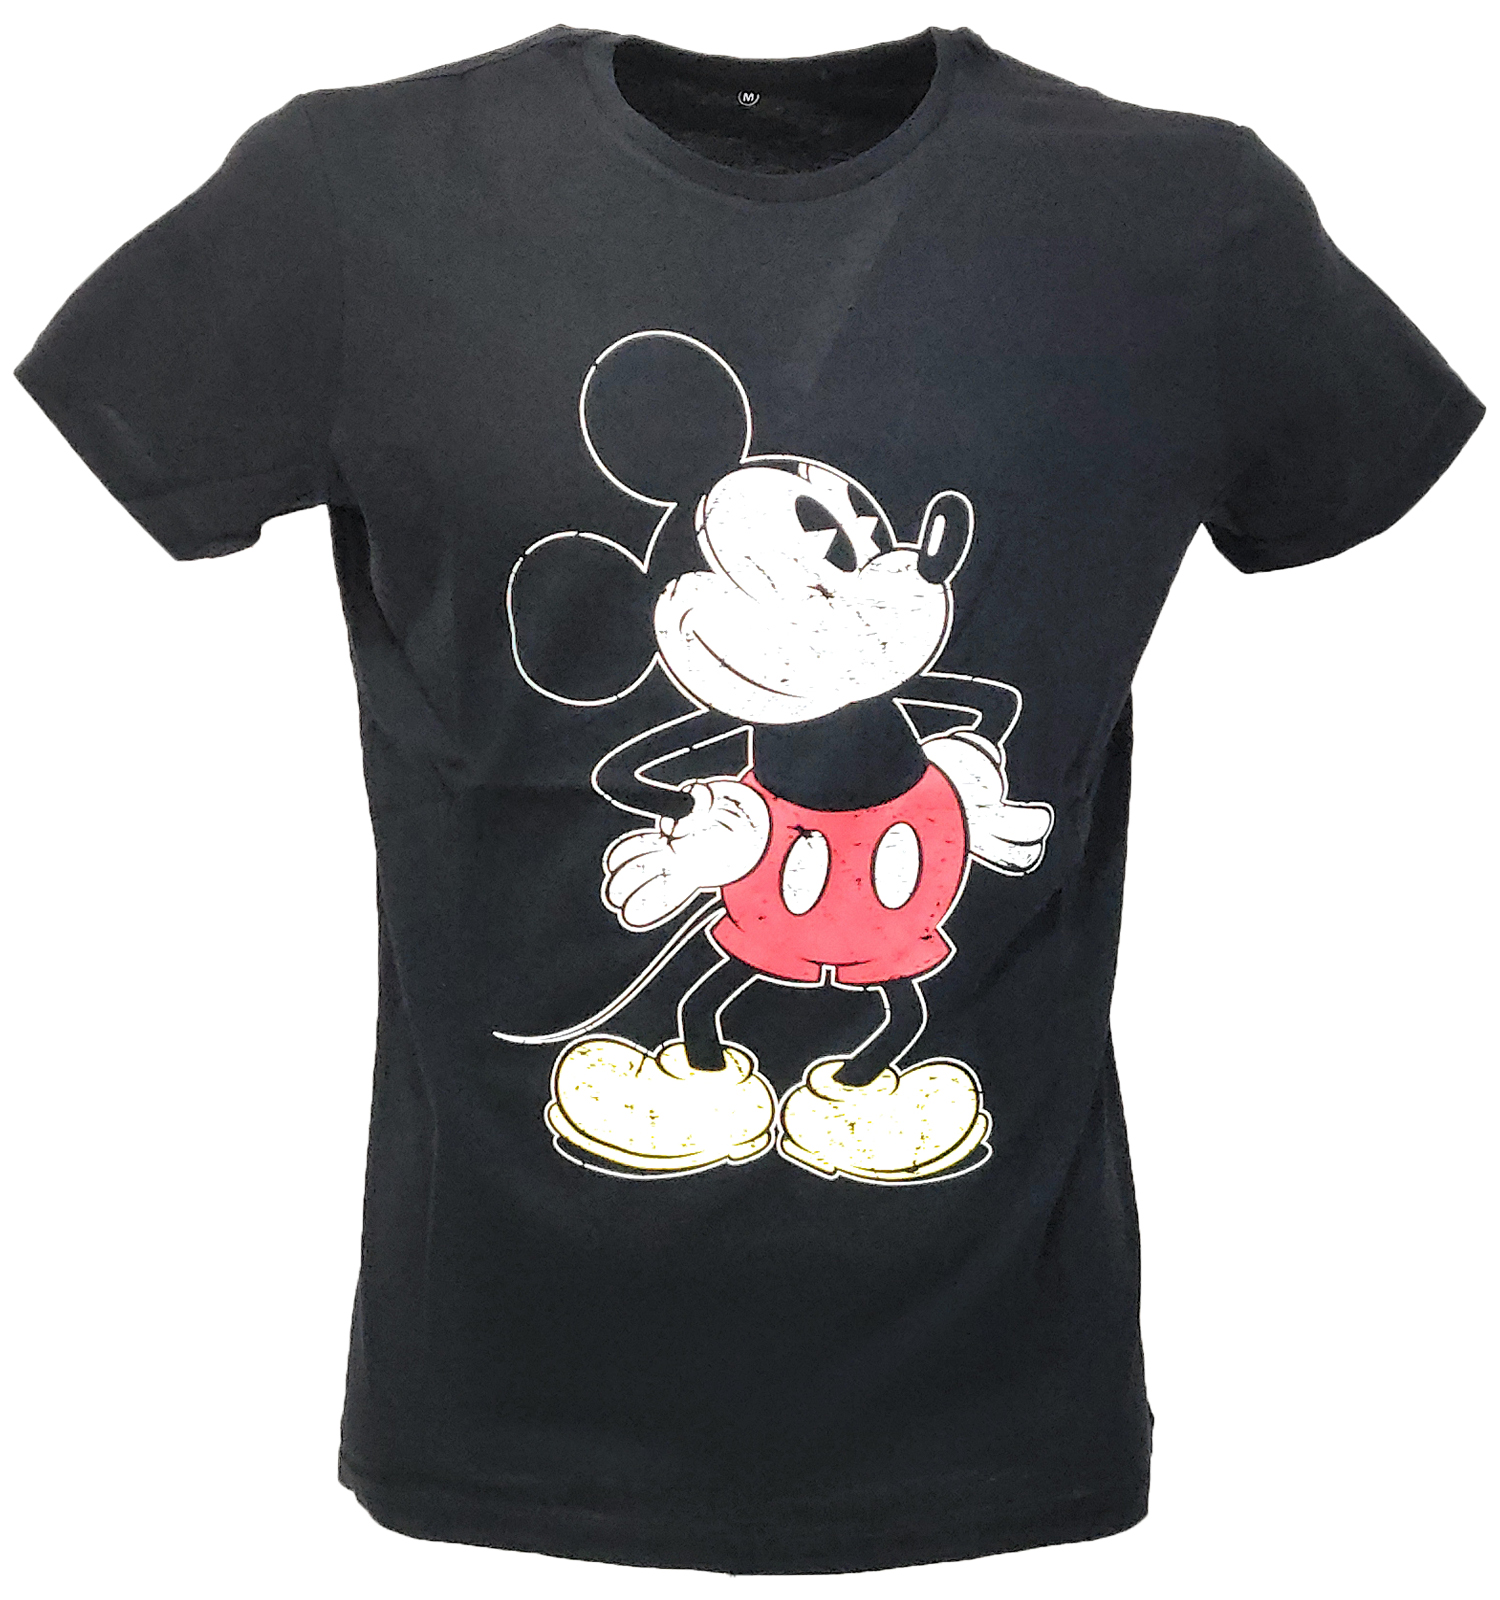 Knit tshirt summer mickey mouse disney boy cotton half sleeves printing